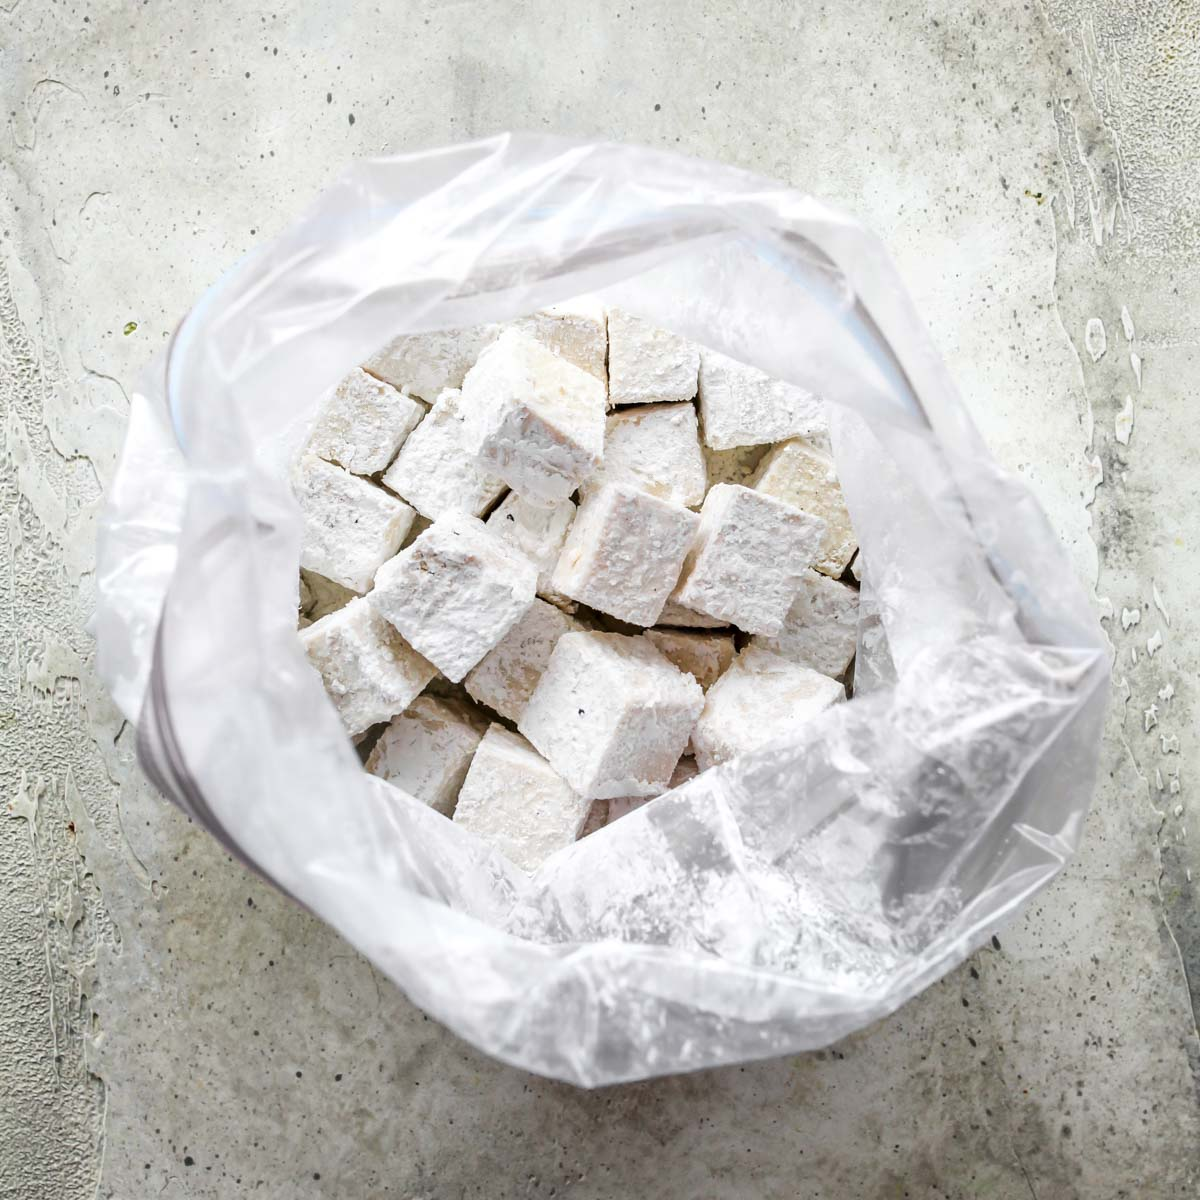 Cubes of tofu tossed in corn starch in a gallon-sized bag